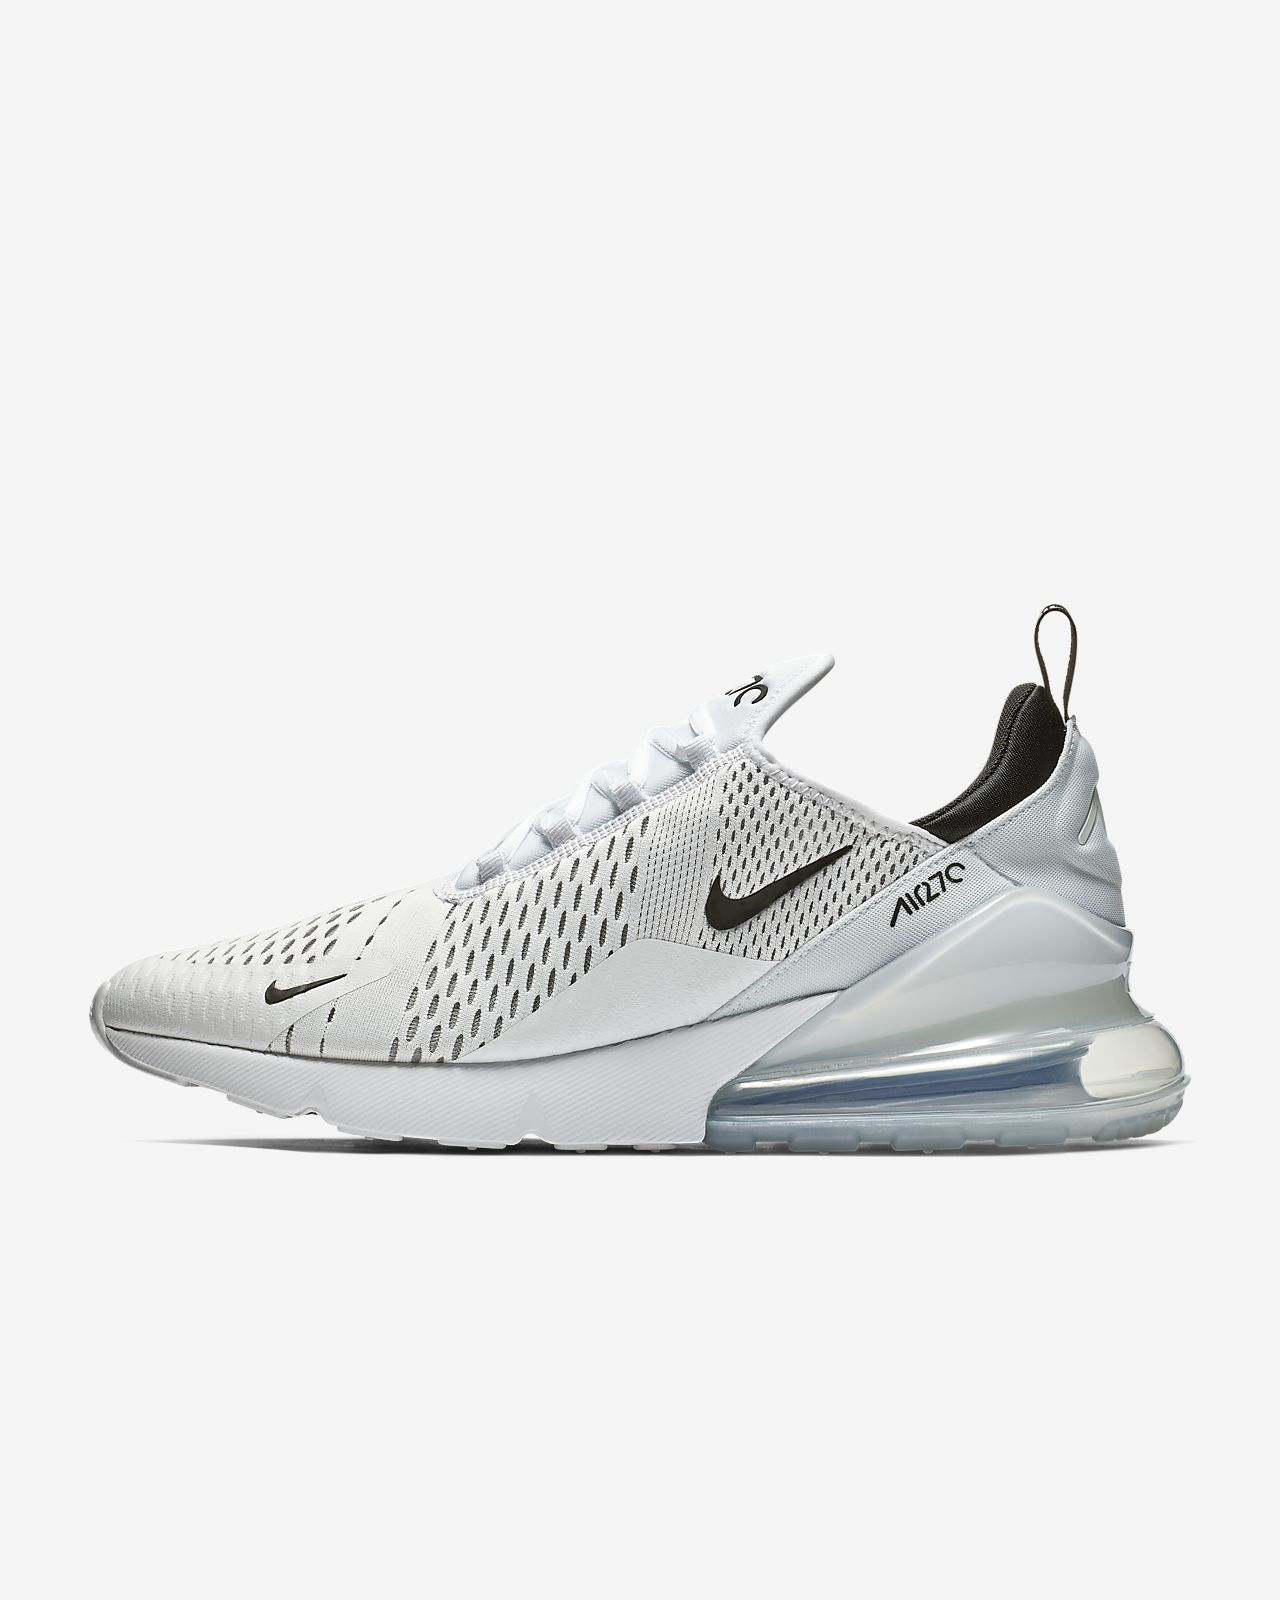 promo code 80e5a 52d94 Nike Air Max 270 Men's Shoe. Nike.com GB